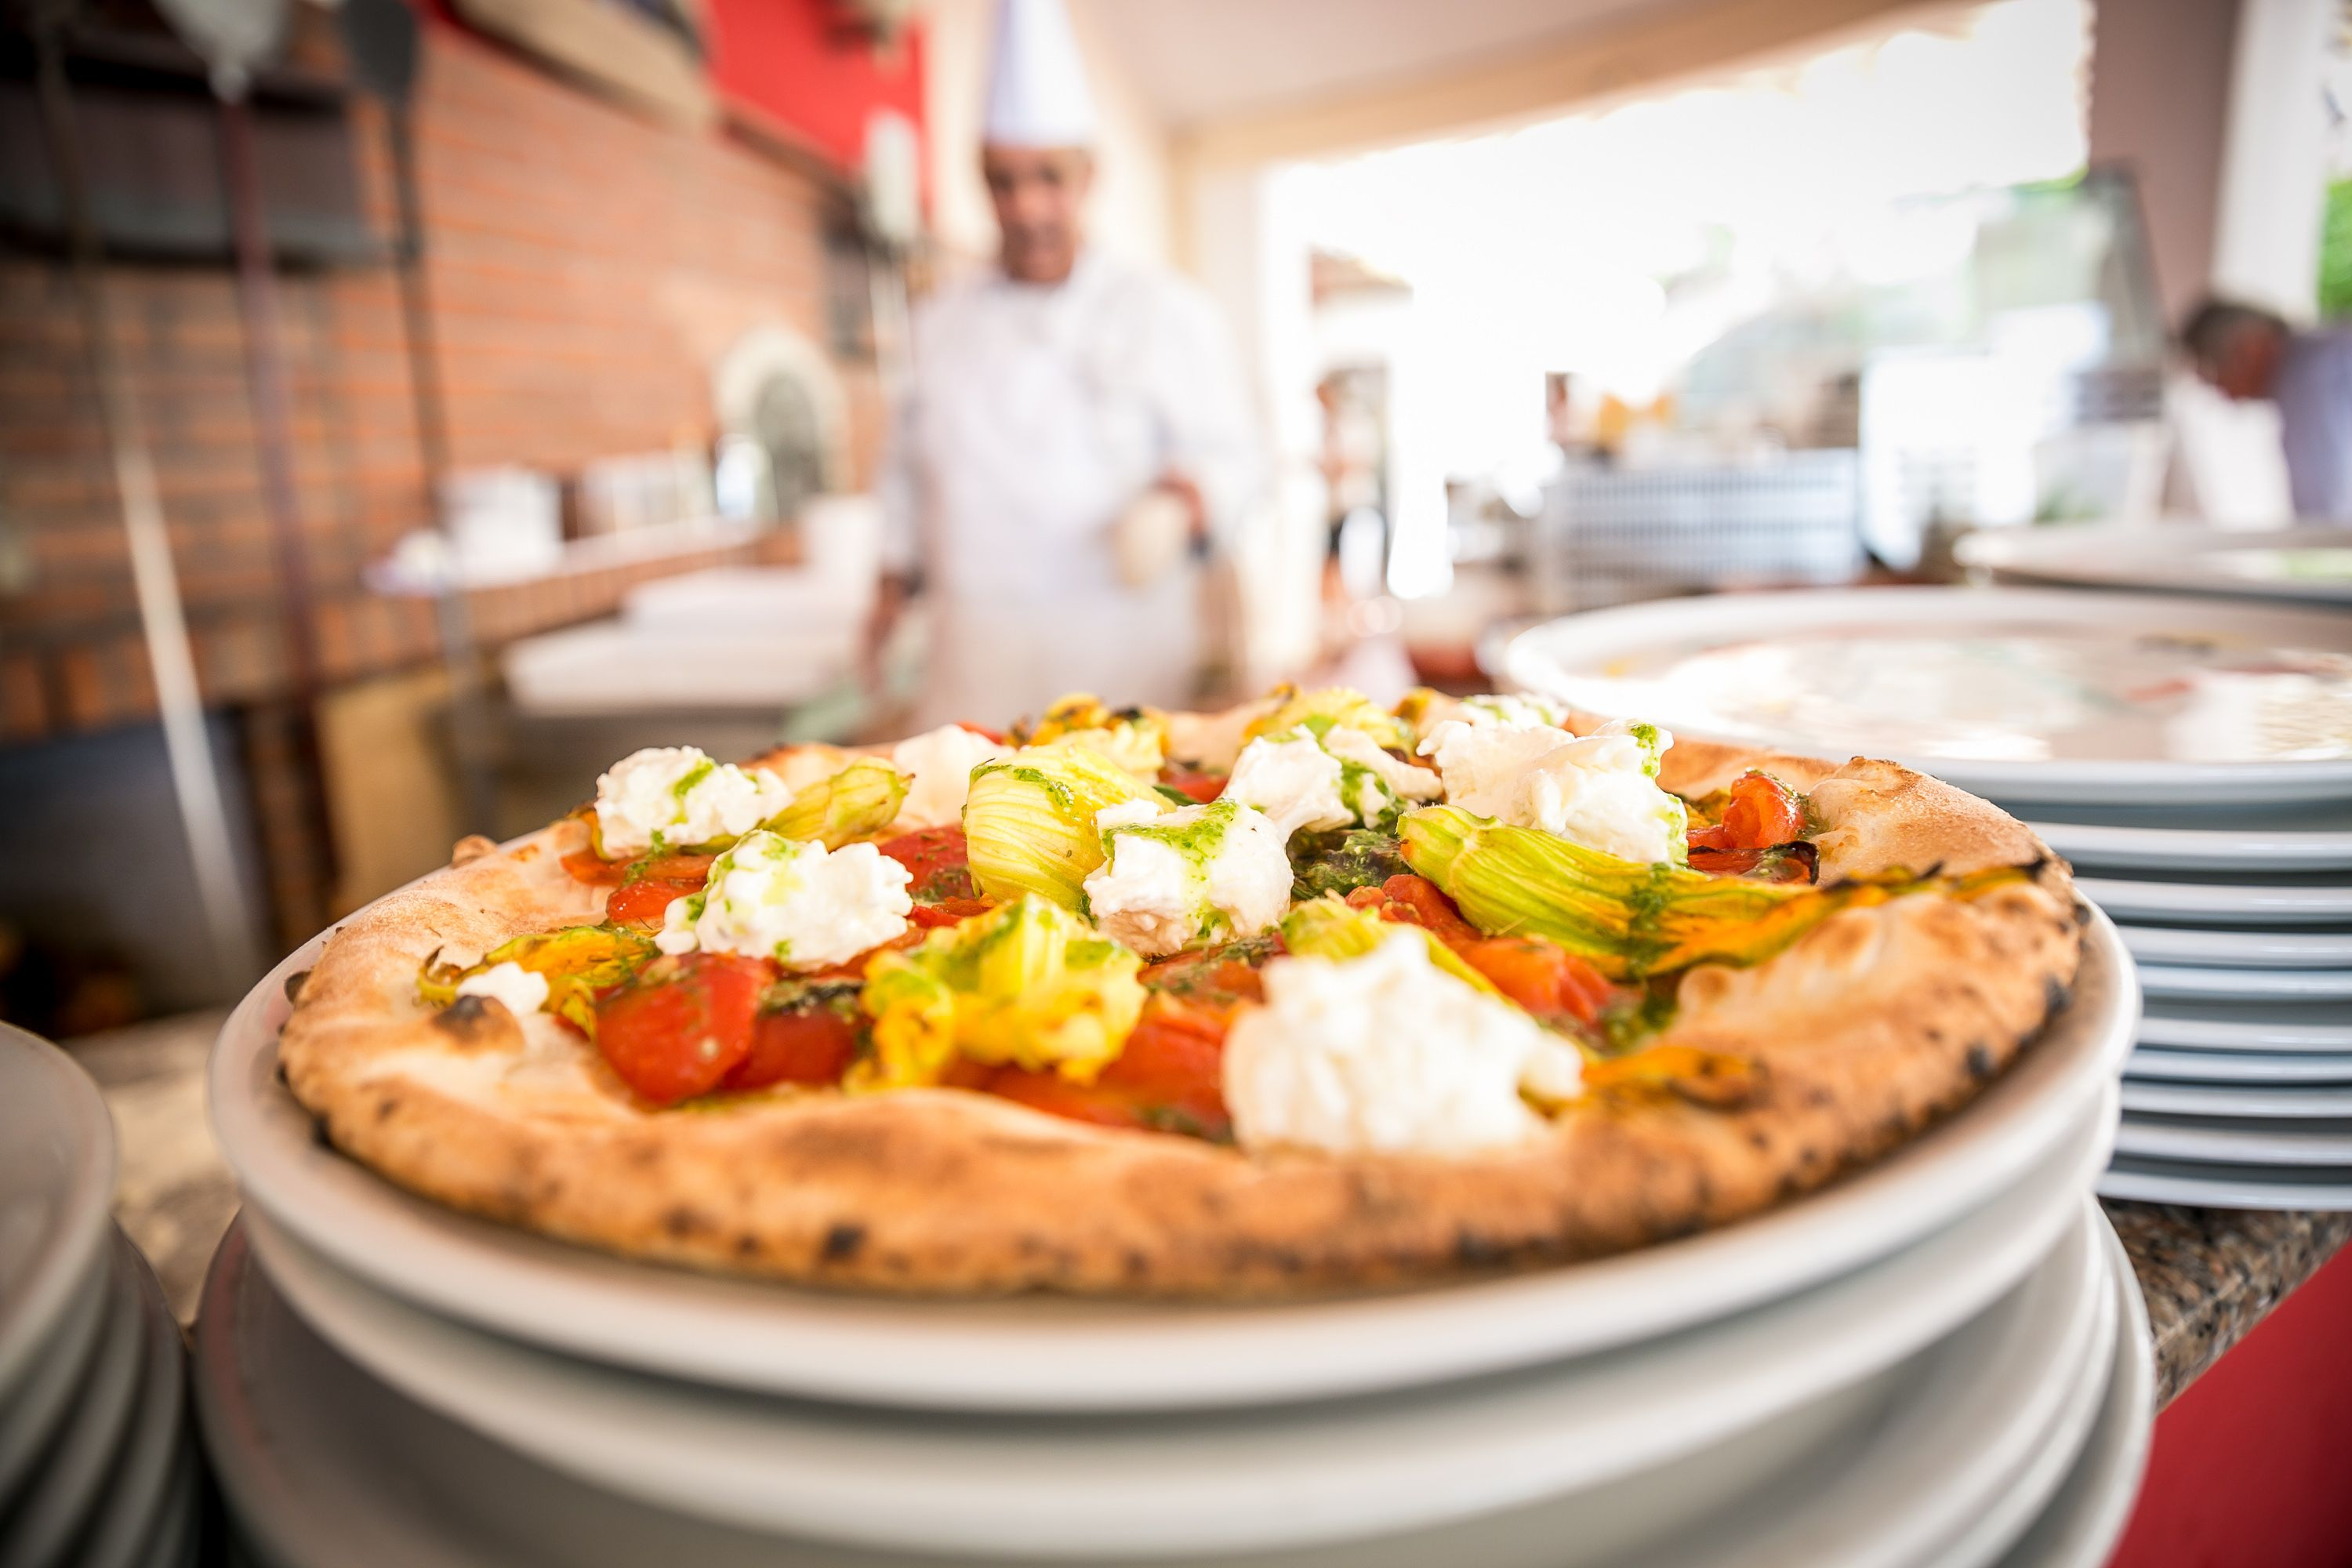 #fortevillage #gourmet #pizza #food #lunch